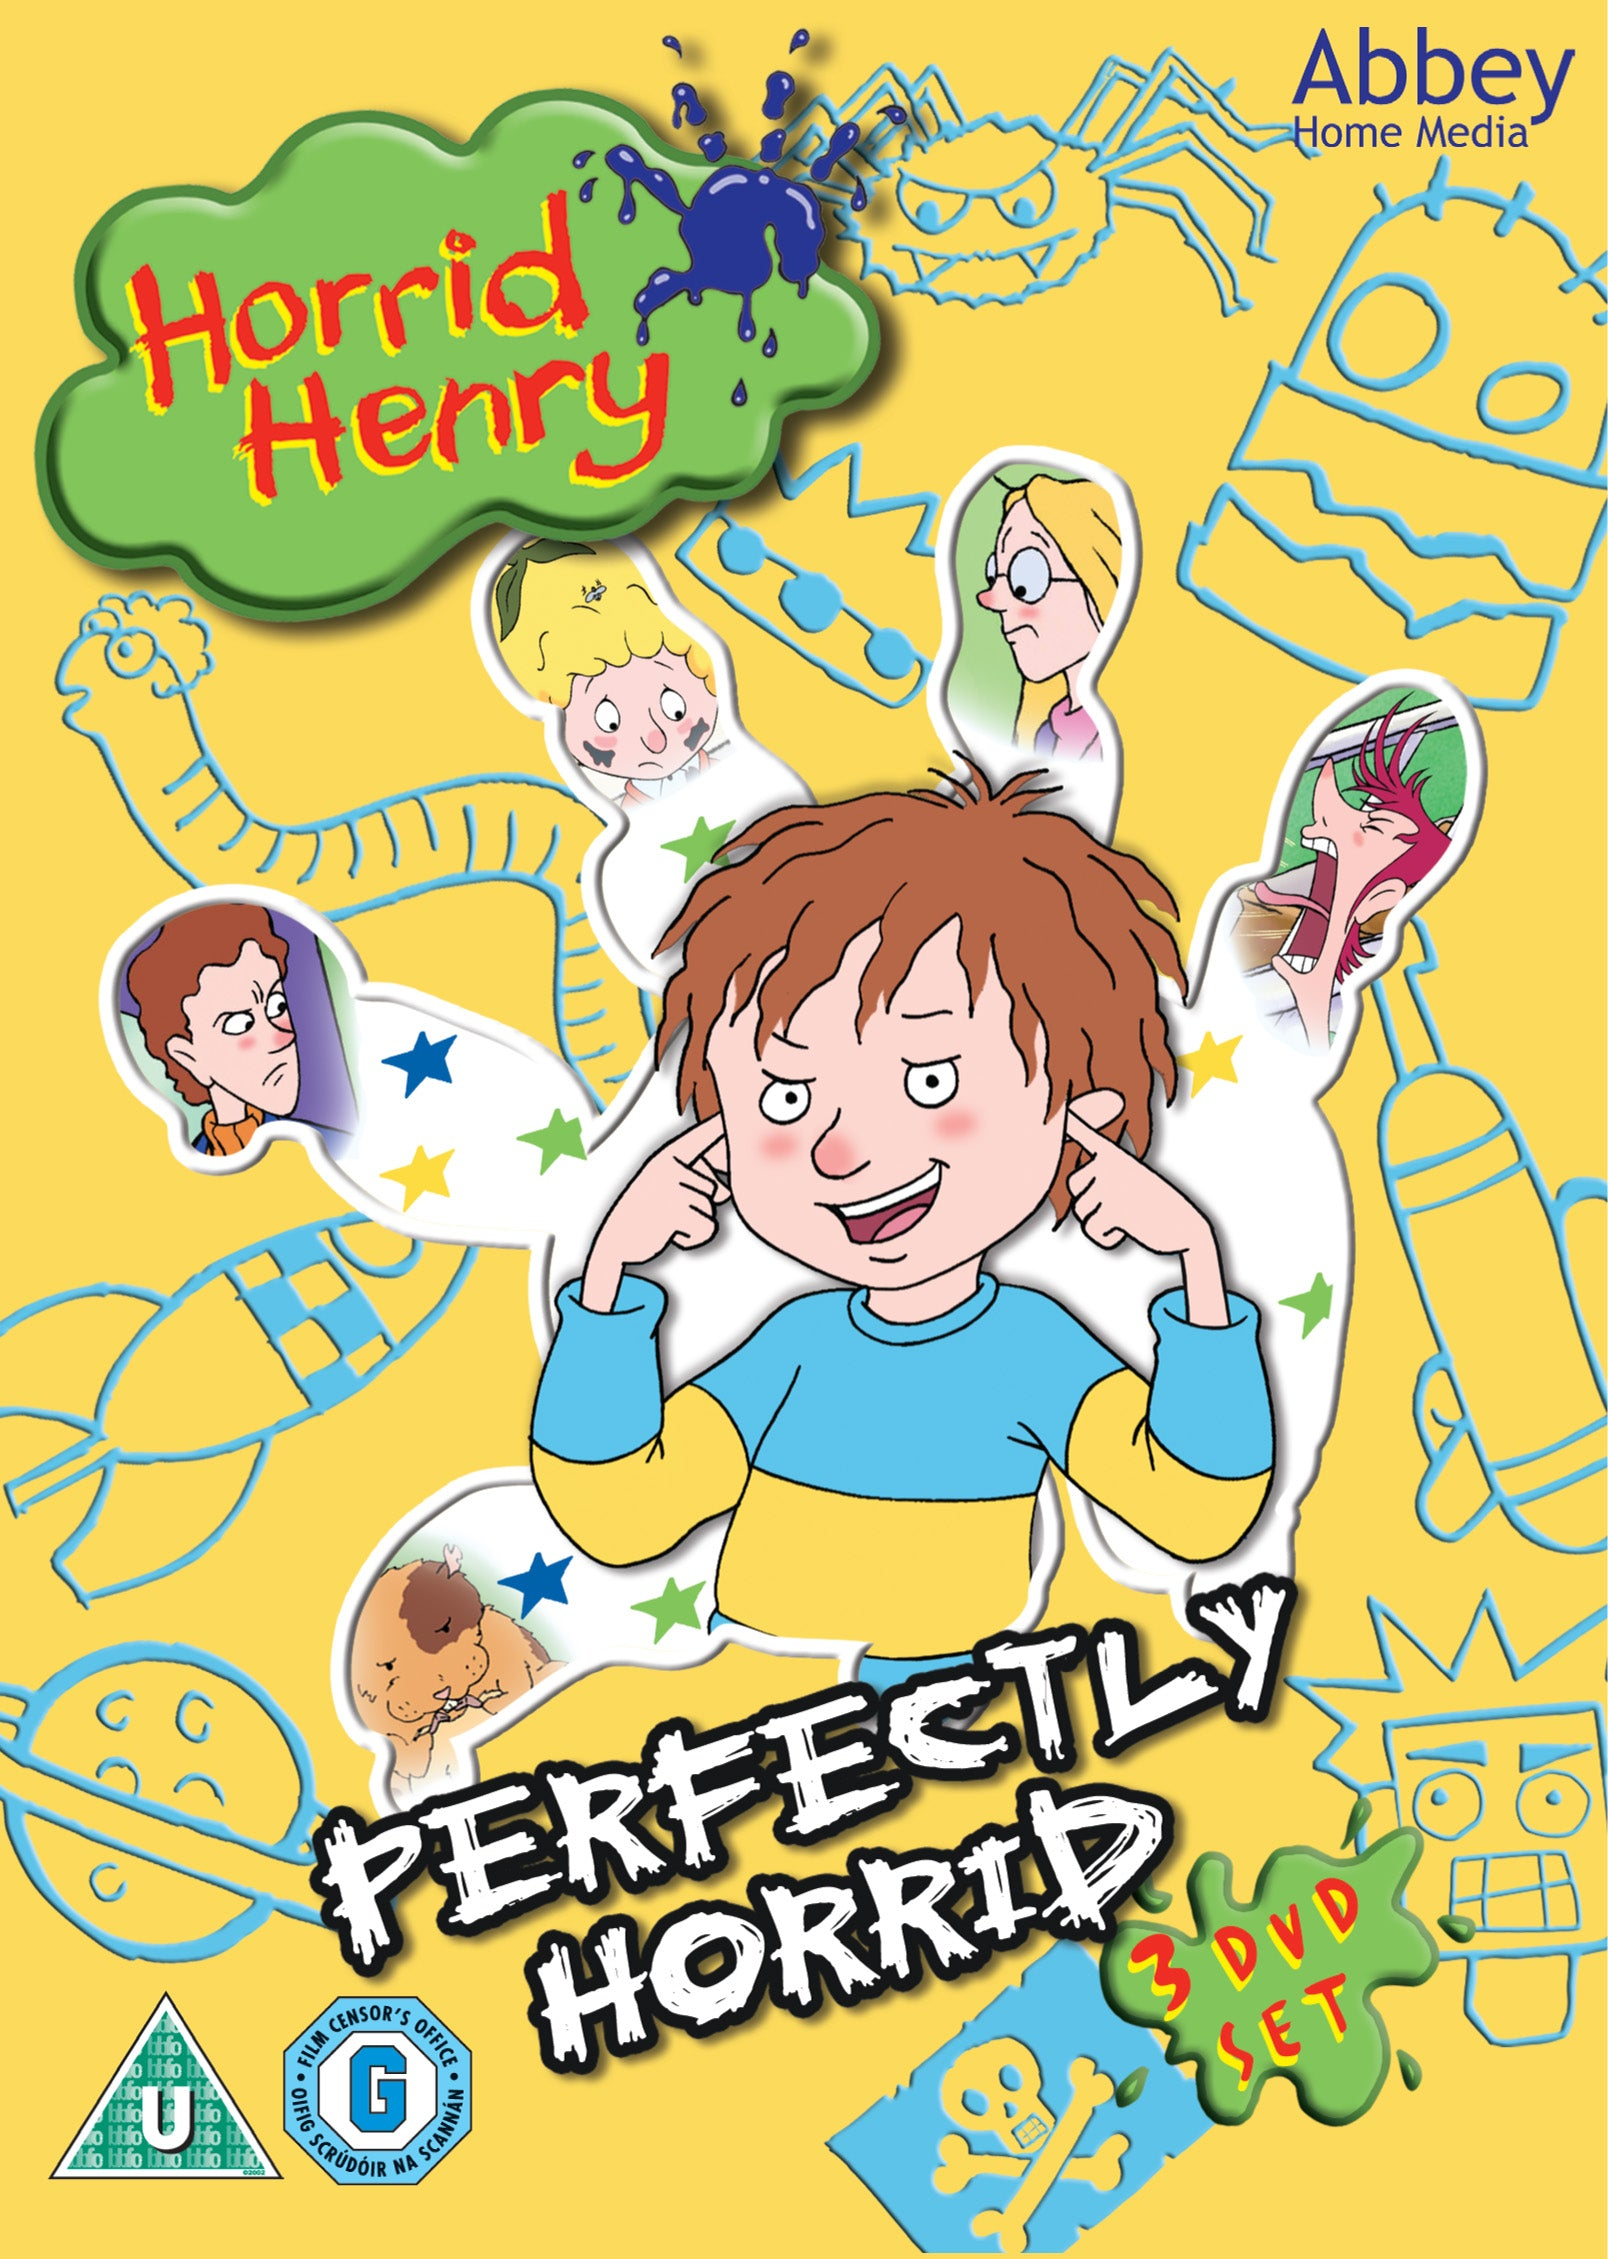 Horrid Henry - Abbey Kids